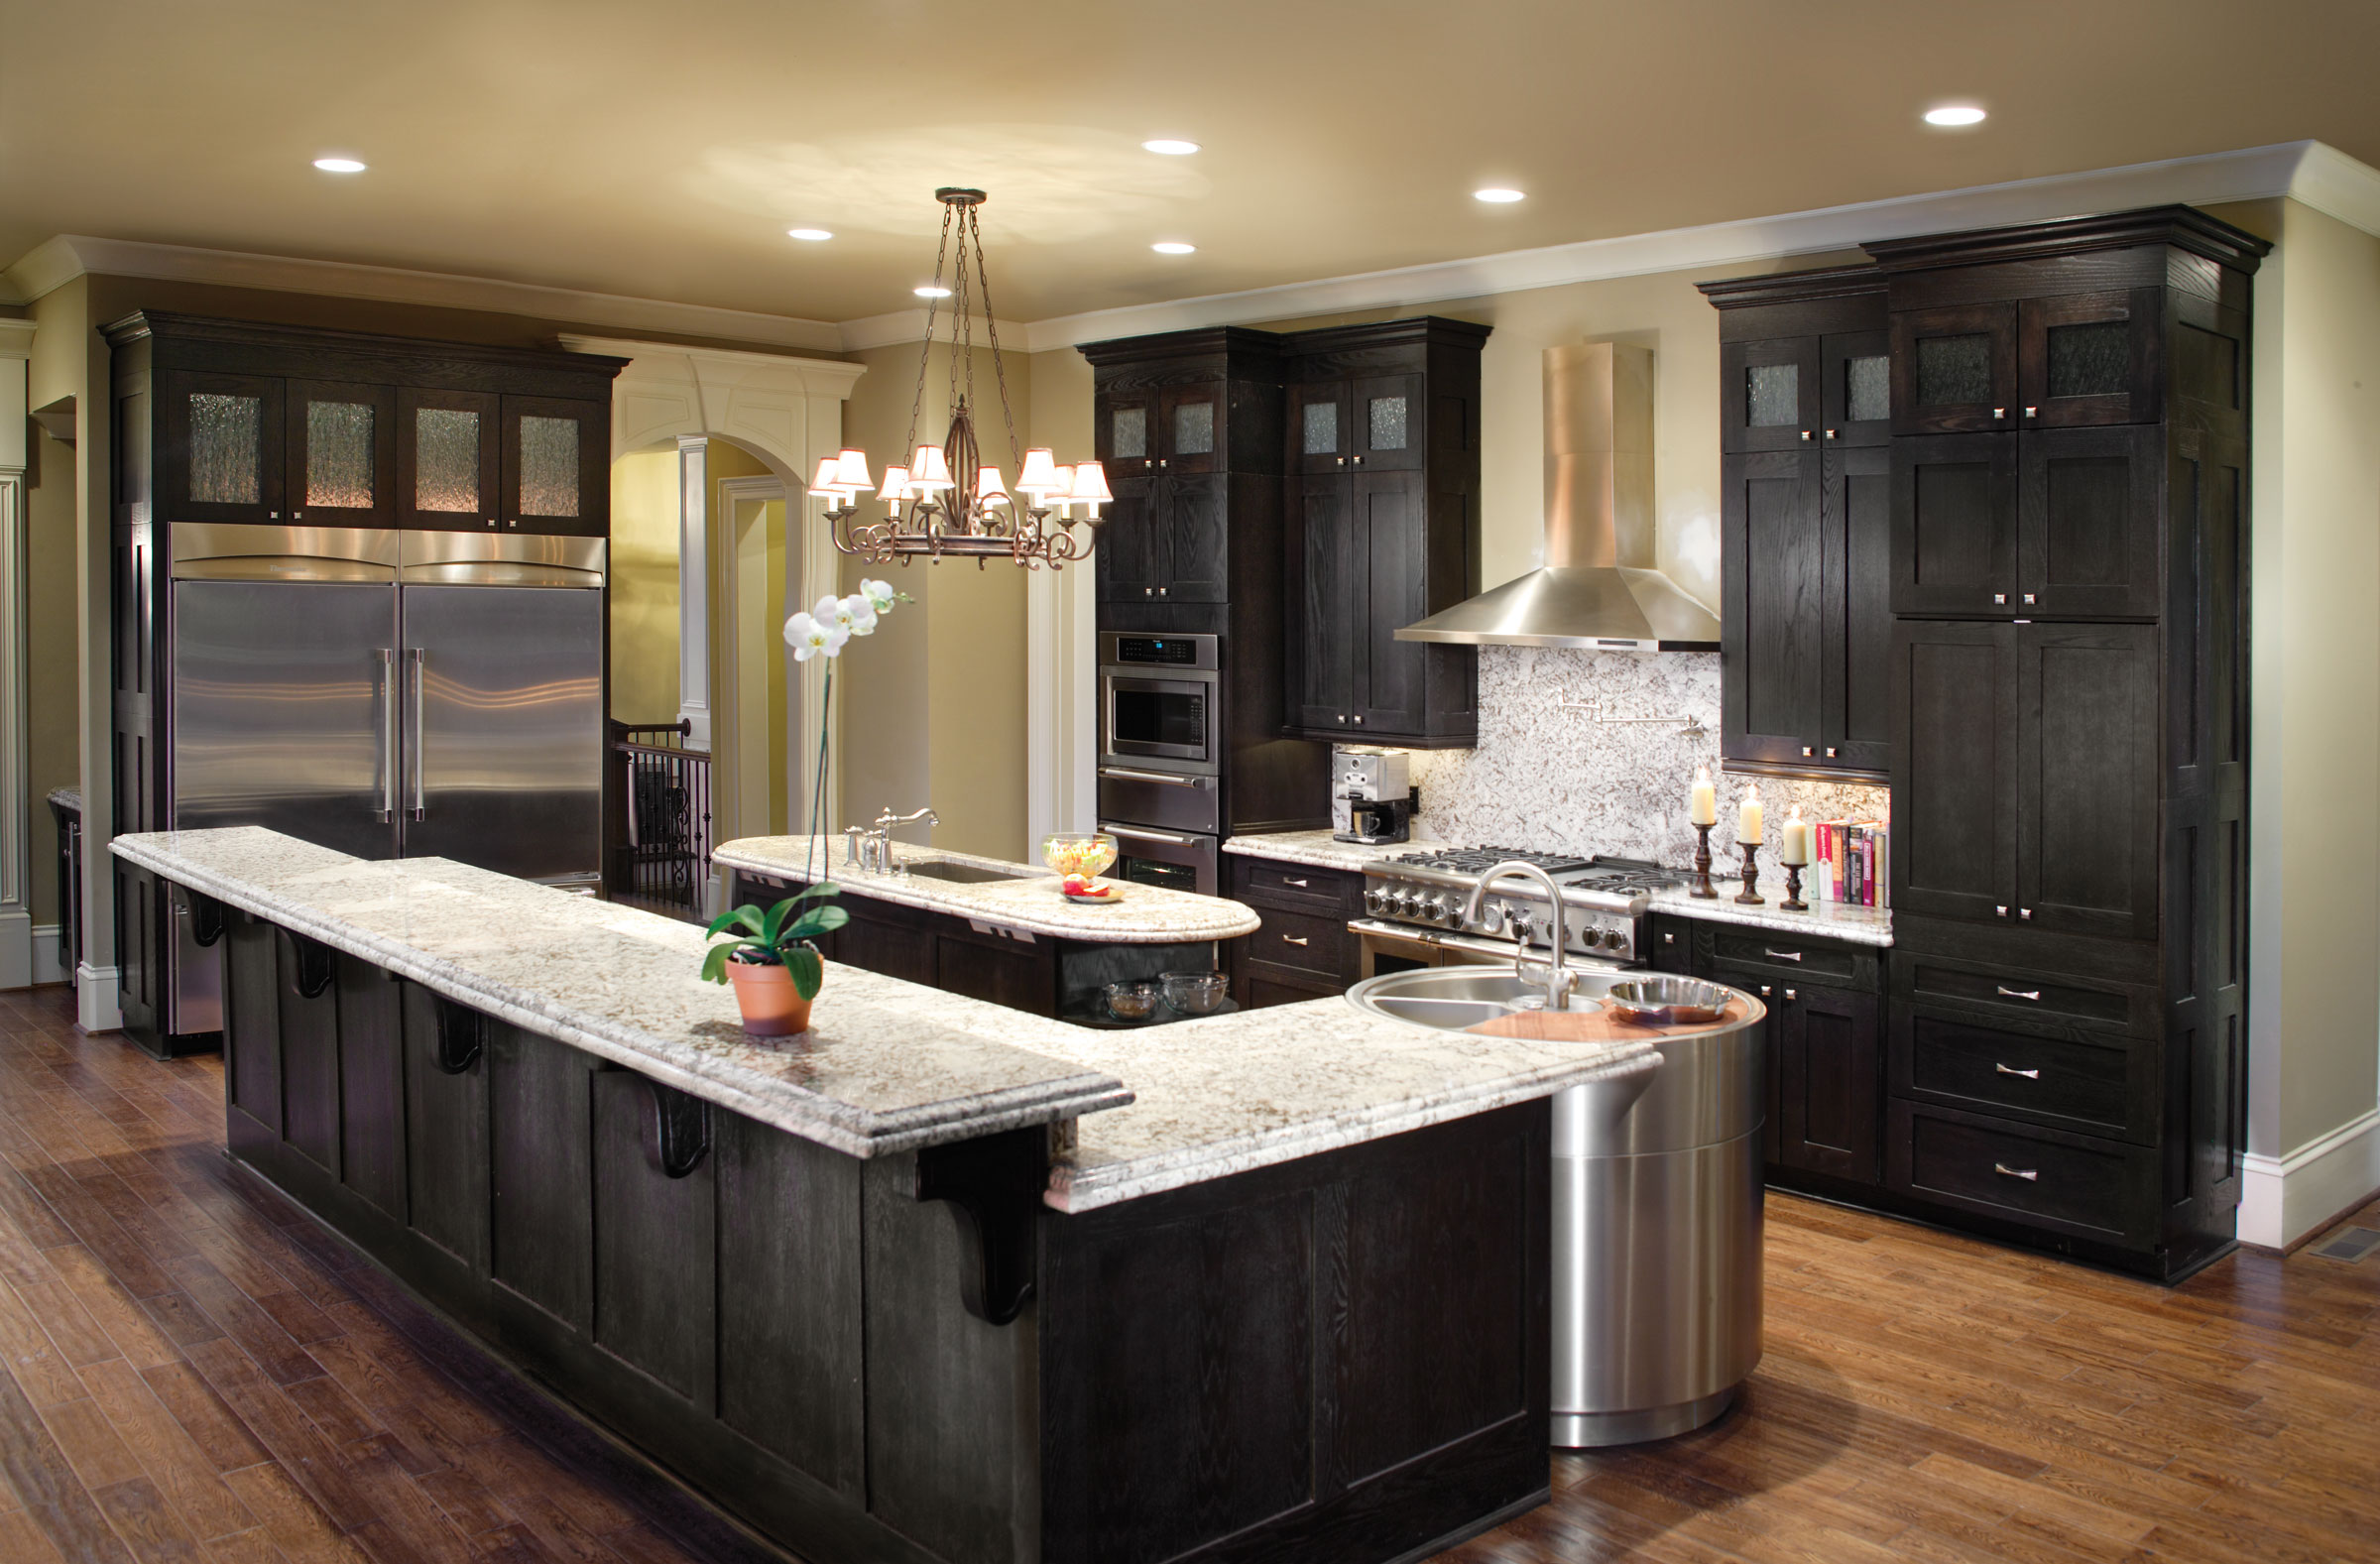 Custom Kitchen U0026 Bathroom Cabinets Company In Phoenix, AZ | Cabinet Maker